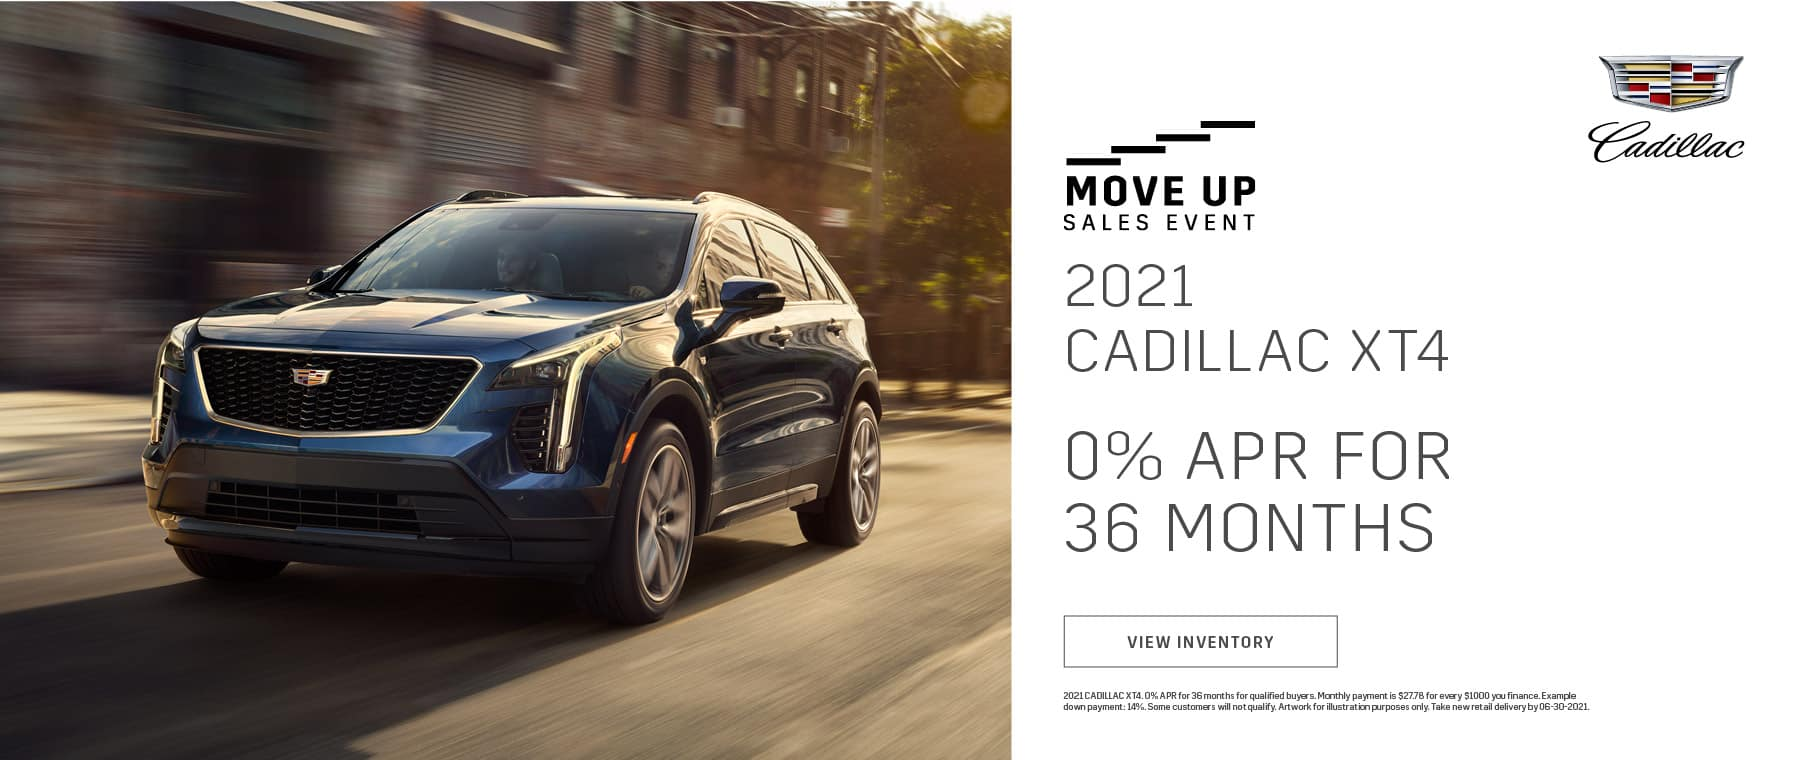 2021 Cadillac XT4 - Move Up Sales Event - Bert Ogden Cadillac in Mission, Texas